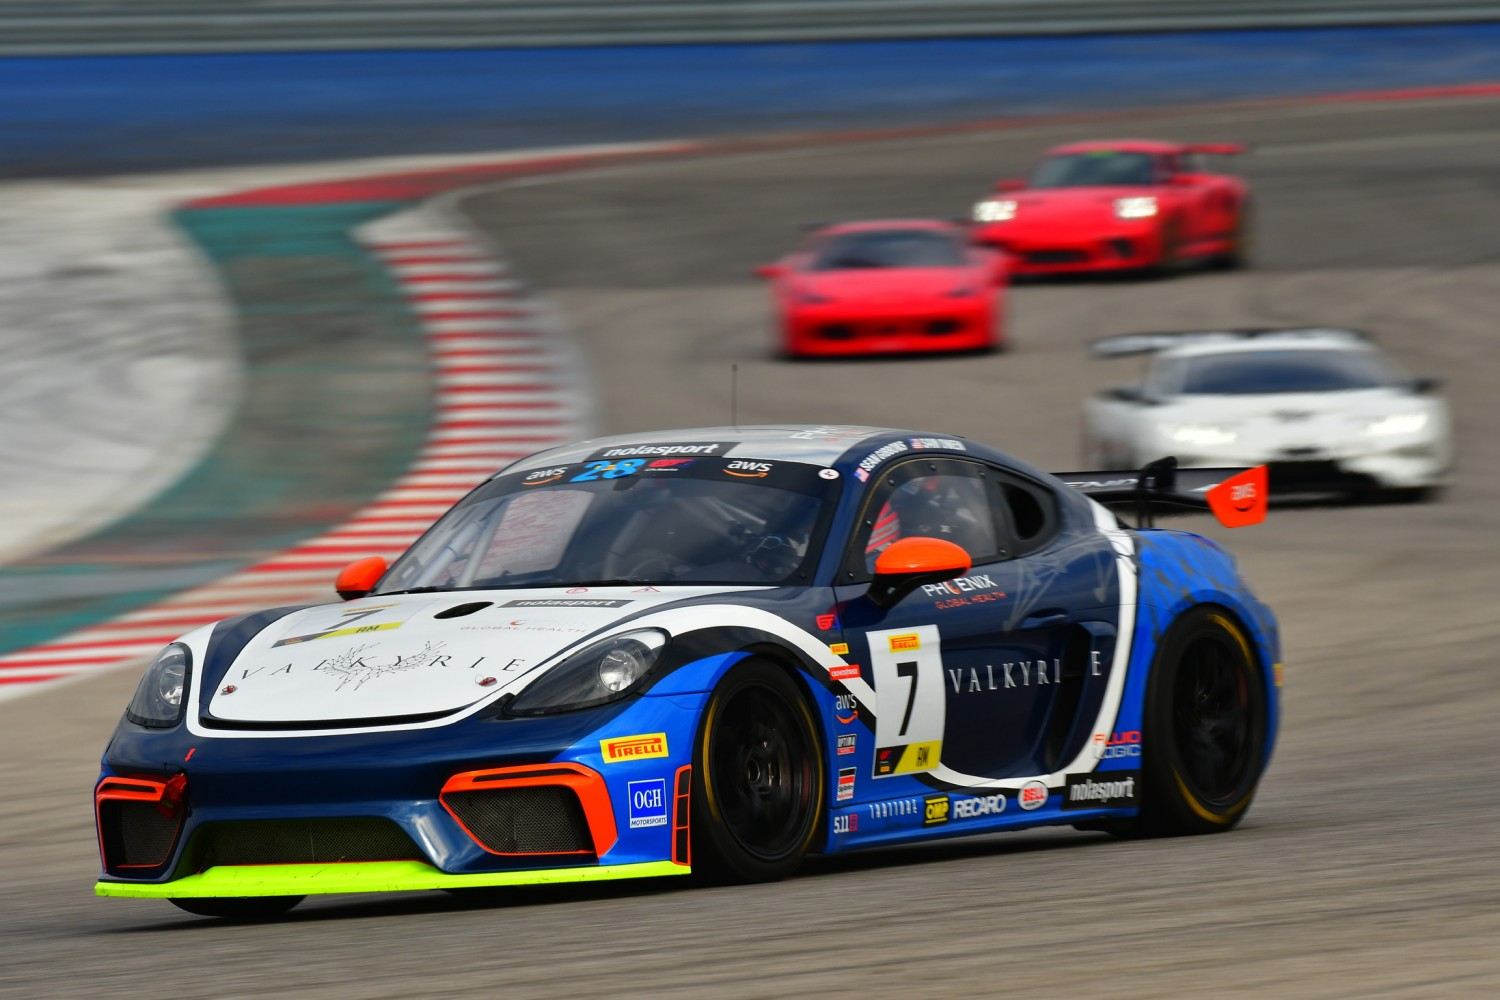 OGH Motorports Will Return to Pirelli GT4 America Competition in Partnership with NOLASPORT